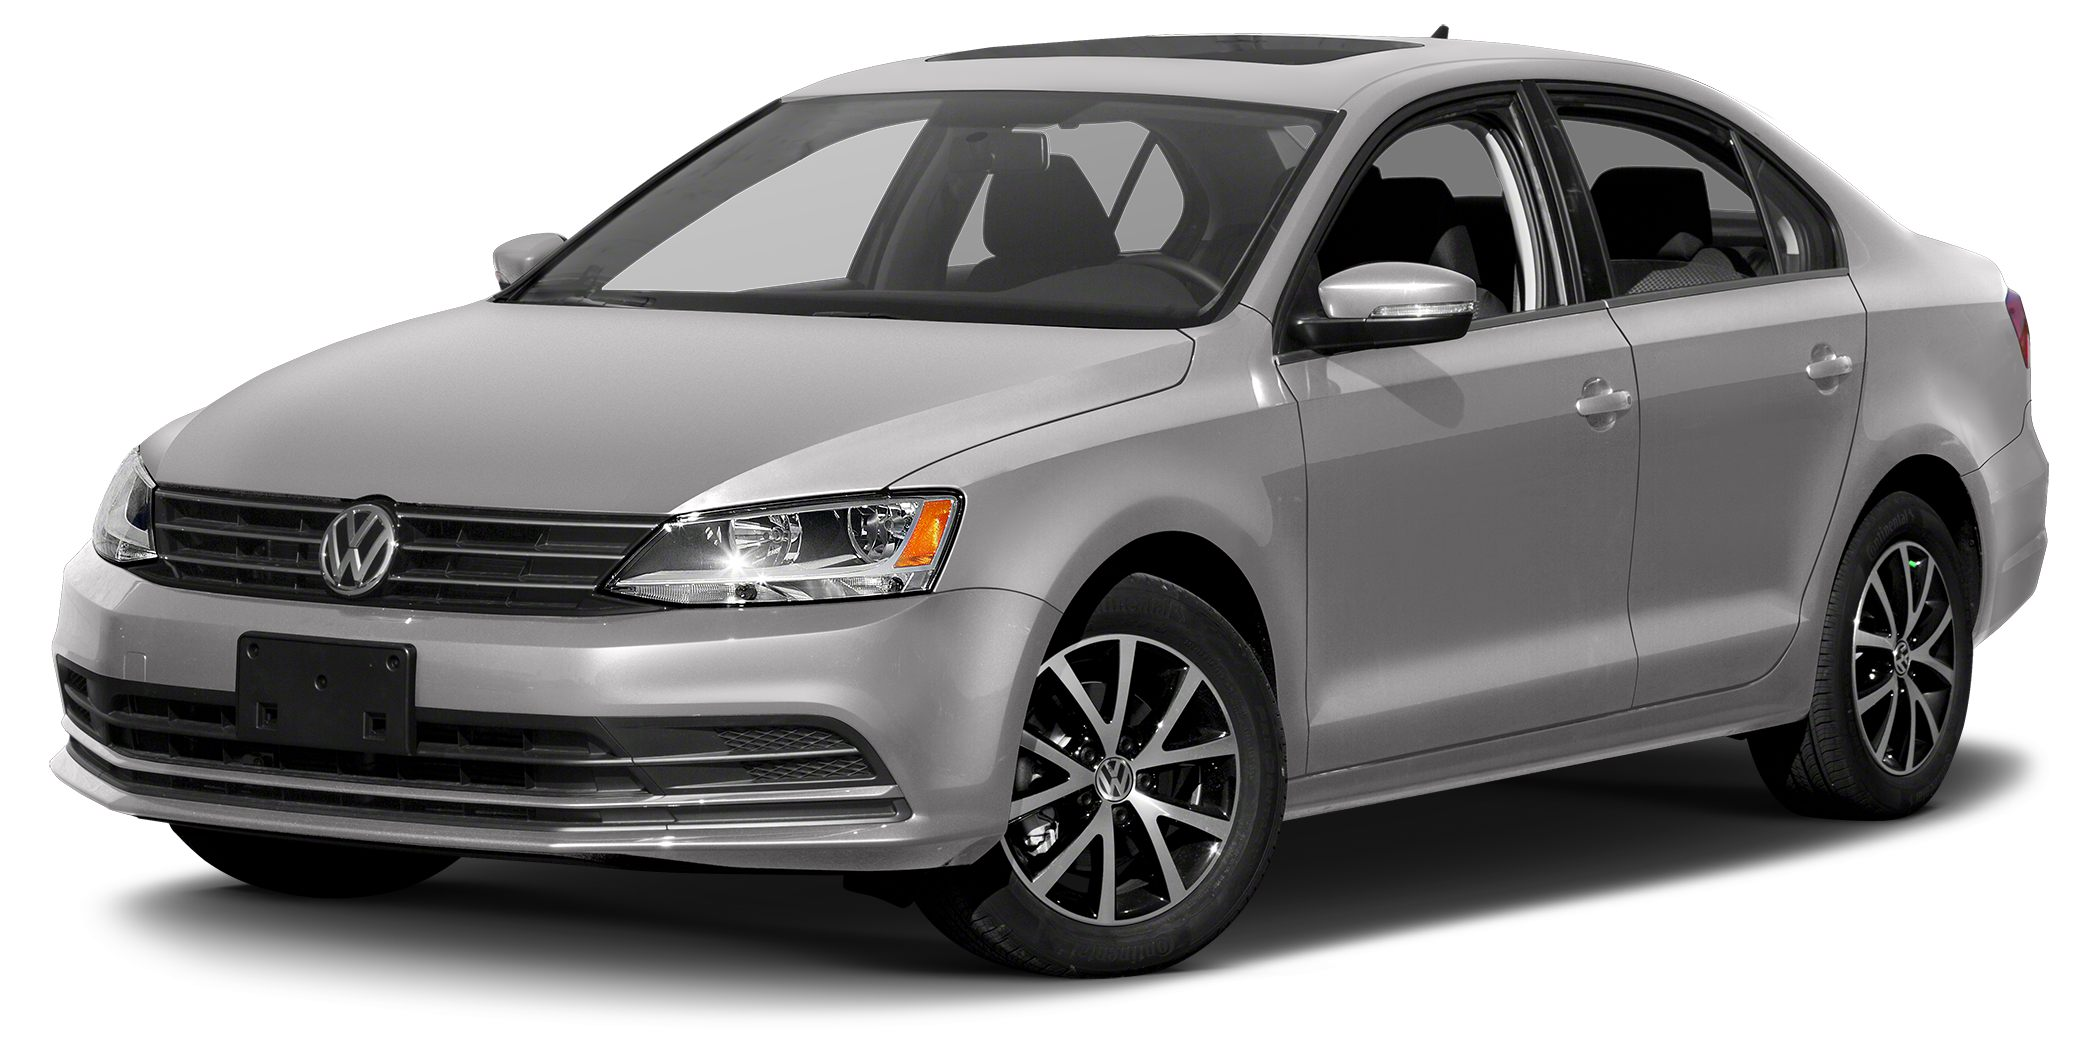 2015 Volkswagen Jetta  Delivers 37 Highway MPG and 25 City MPG Carfax One-Owner Vehicle This Vol